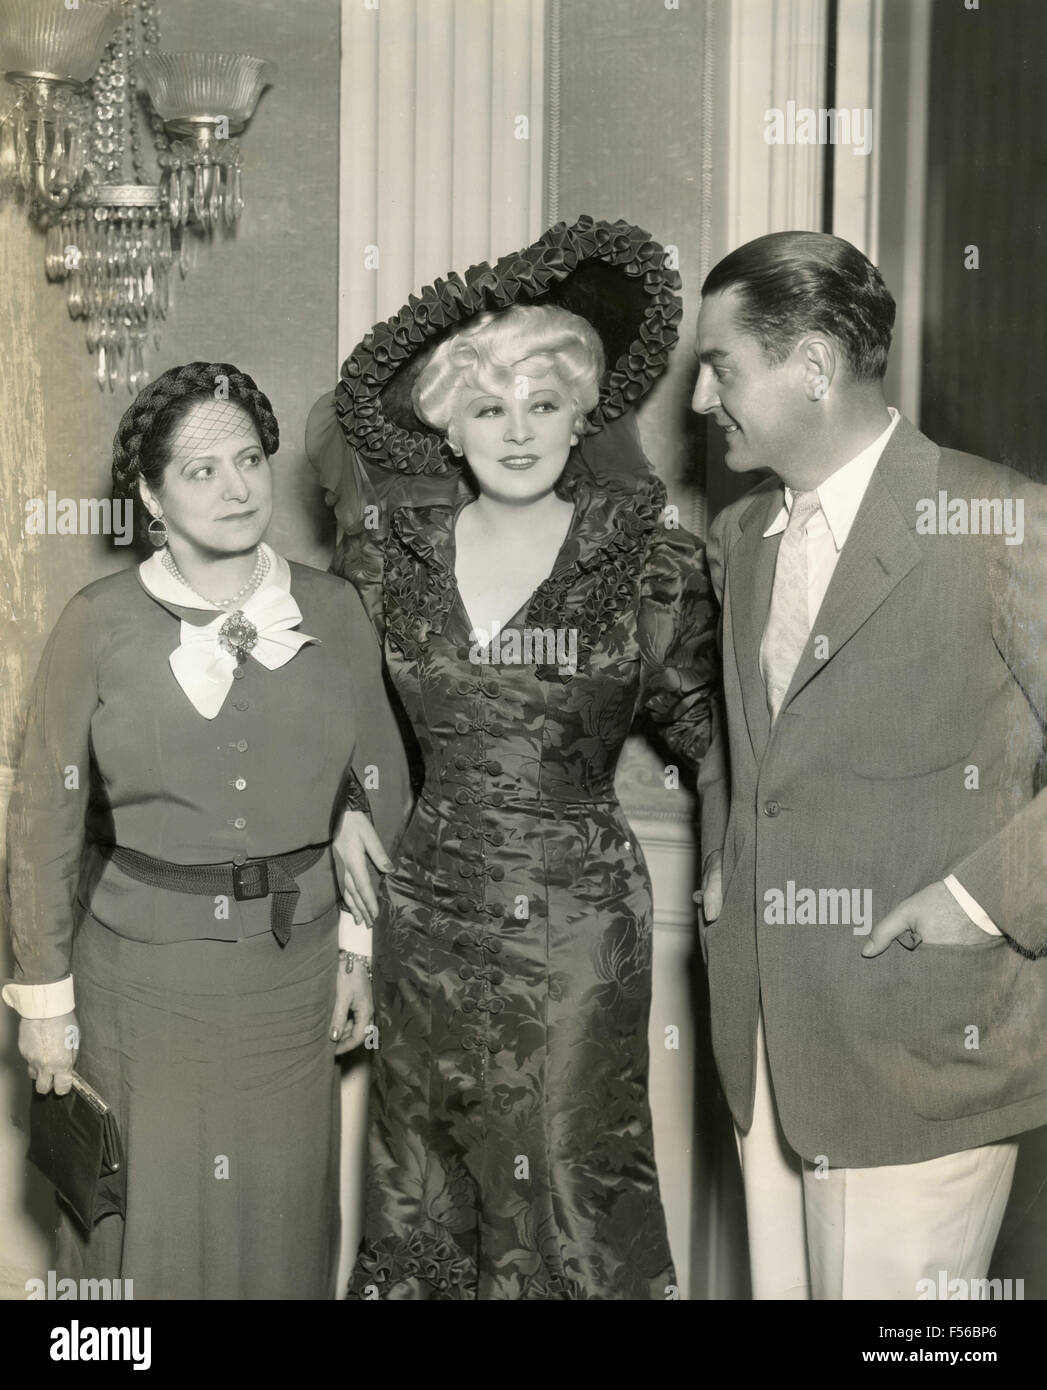 The American actress Mae West with director Leo McCarey and Madame Helena Rubinstein, USA - Stock Image